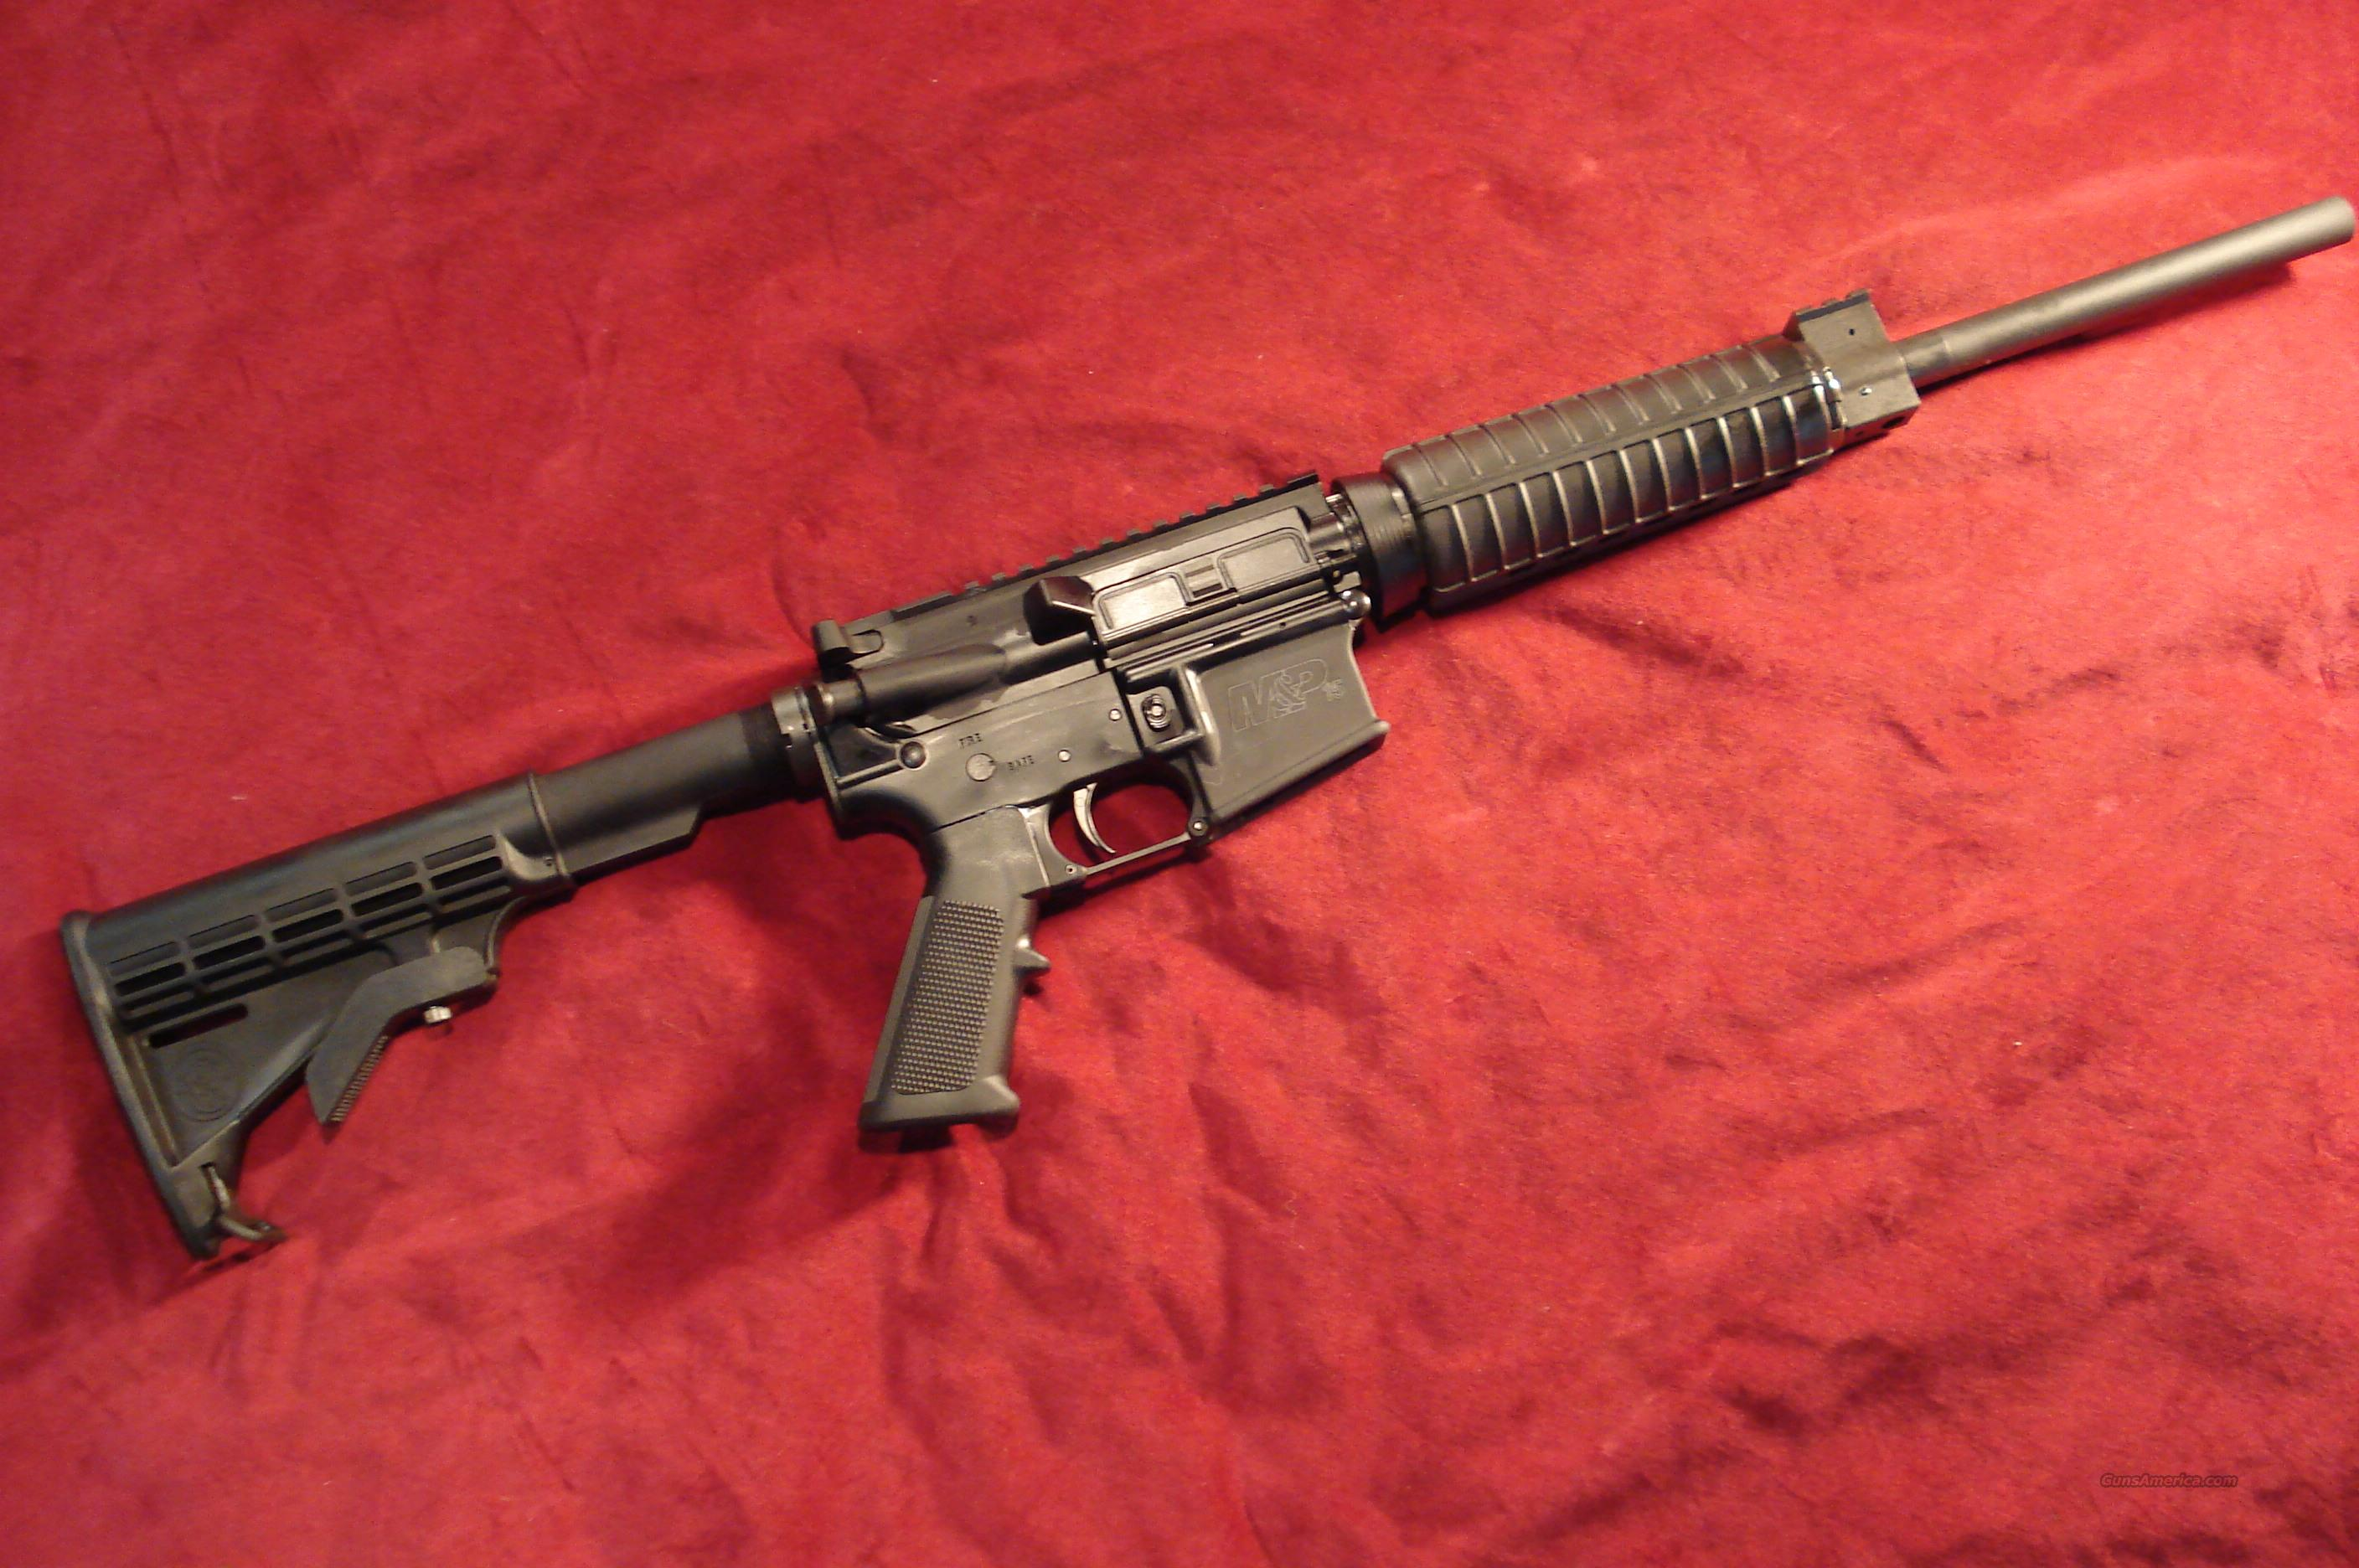 SMITH & WESSON M&P15 O.R.C. ( OPTIC READY CARBINE) NEW    (CT NY MA NJ MD LEGAL)  Guns > Rifles > AR-15 Rifles - Small Manufacturers > Complete Rifle